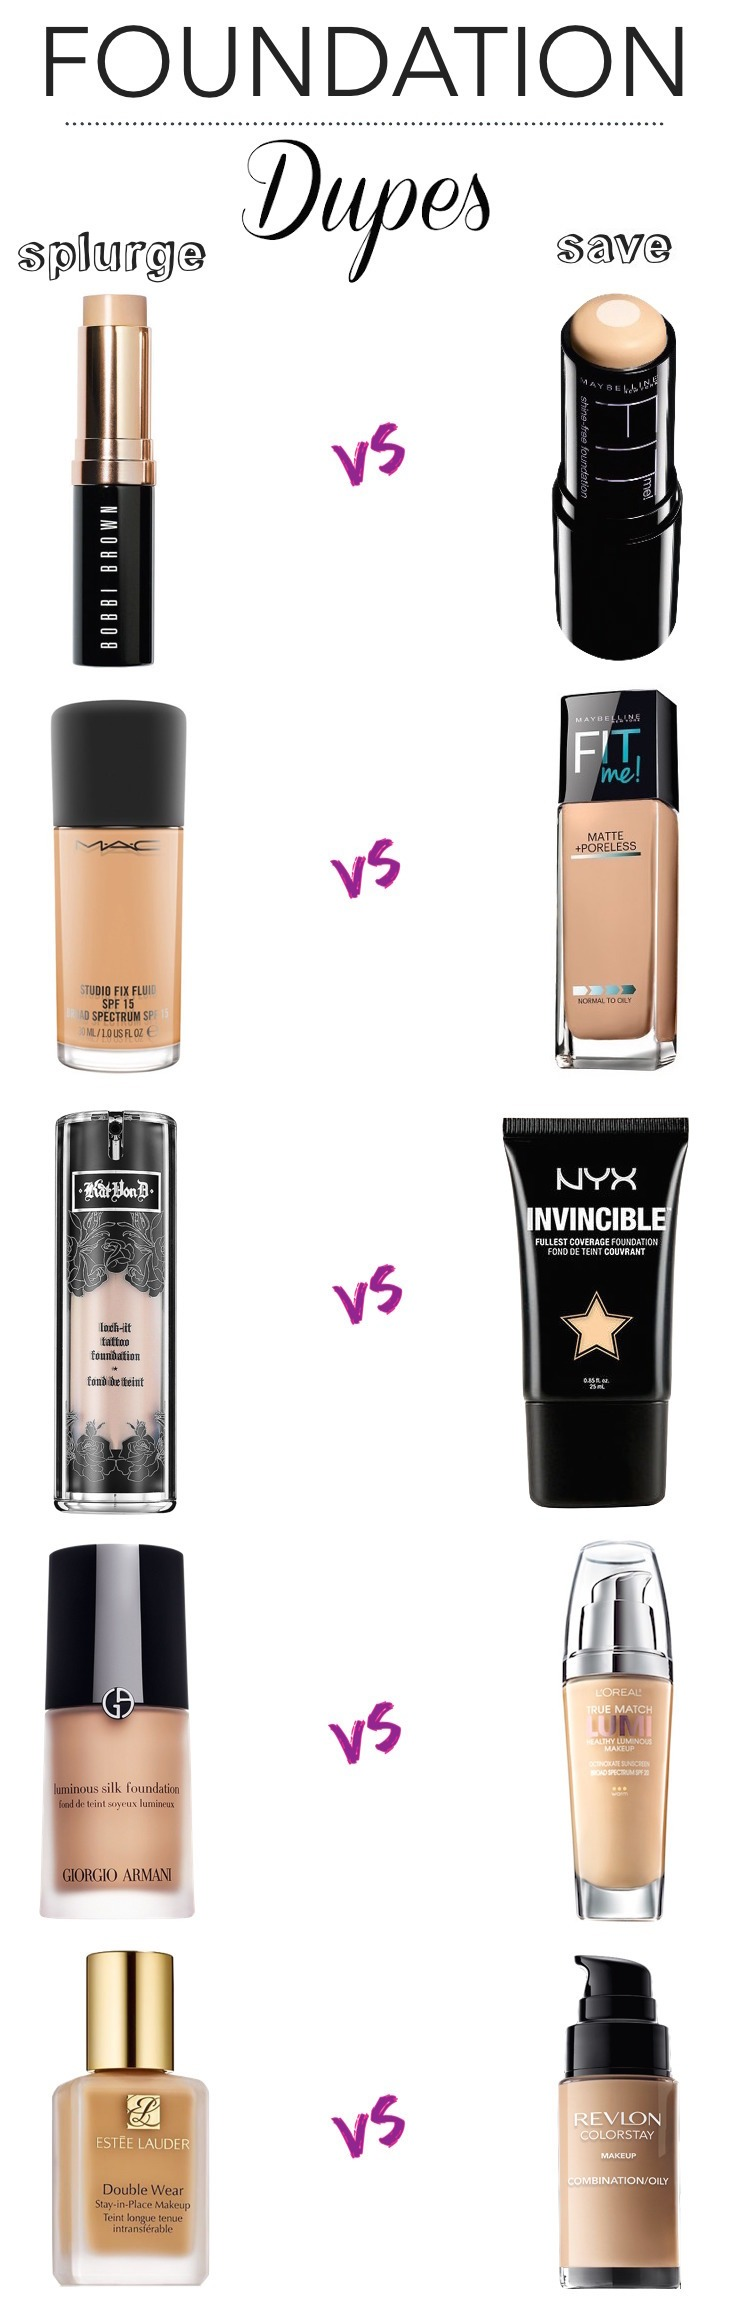 Splurge Vs Save 10 Amazing Drugstore Dupes For High End Foundations